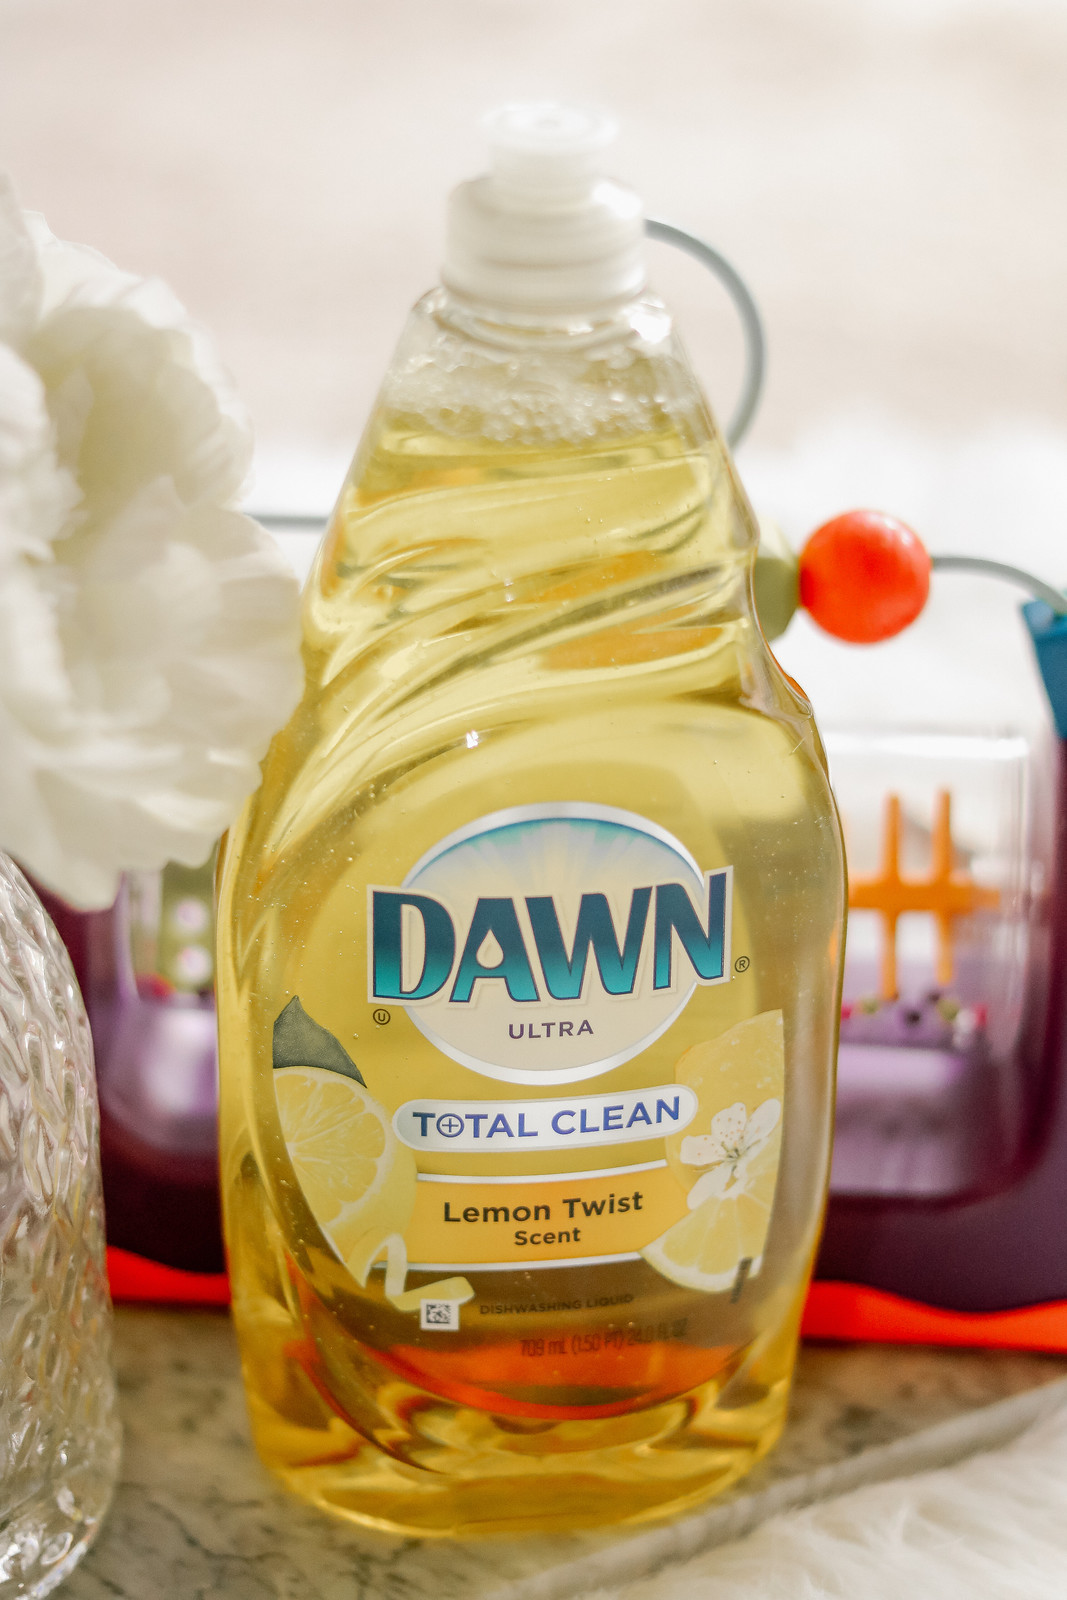 How Dawn can Clean Beyond the Sink #DawnatSamsClub